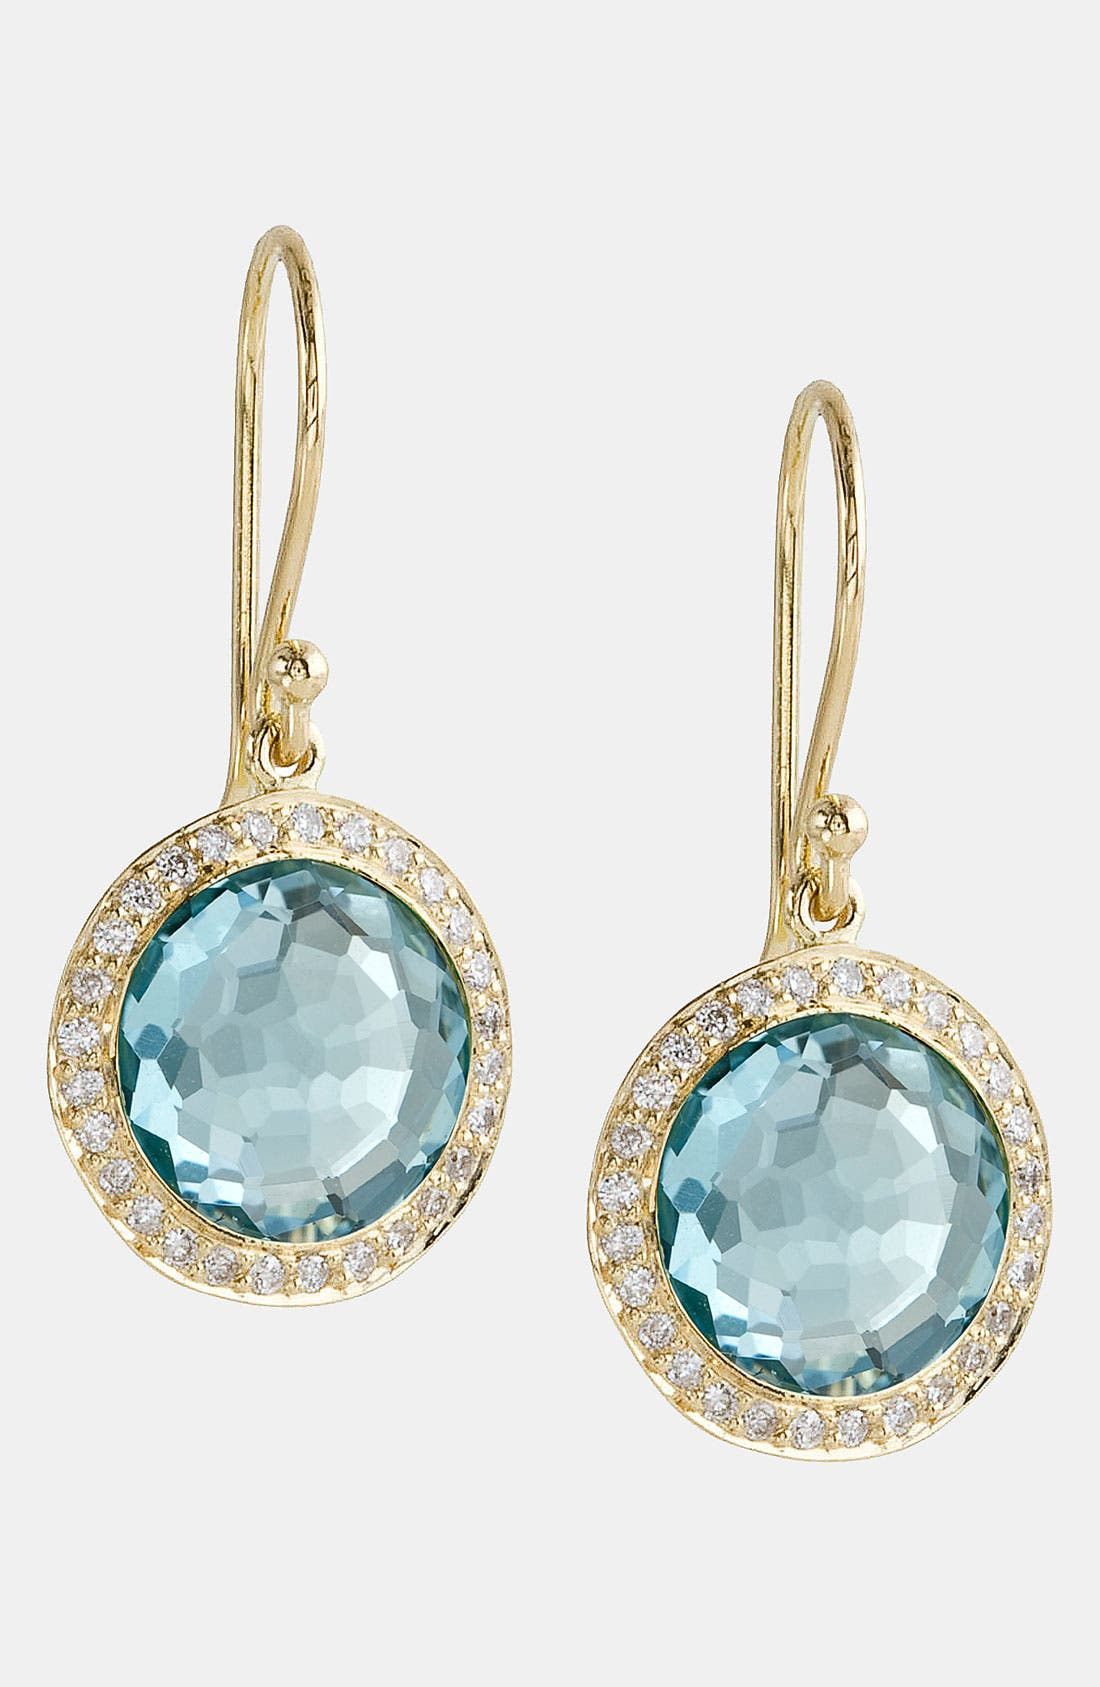 Main Image - Ippolita 'Rock Candy - Mini Lollipop' Diamond & 18k Gold Earrings